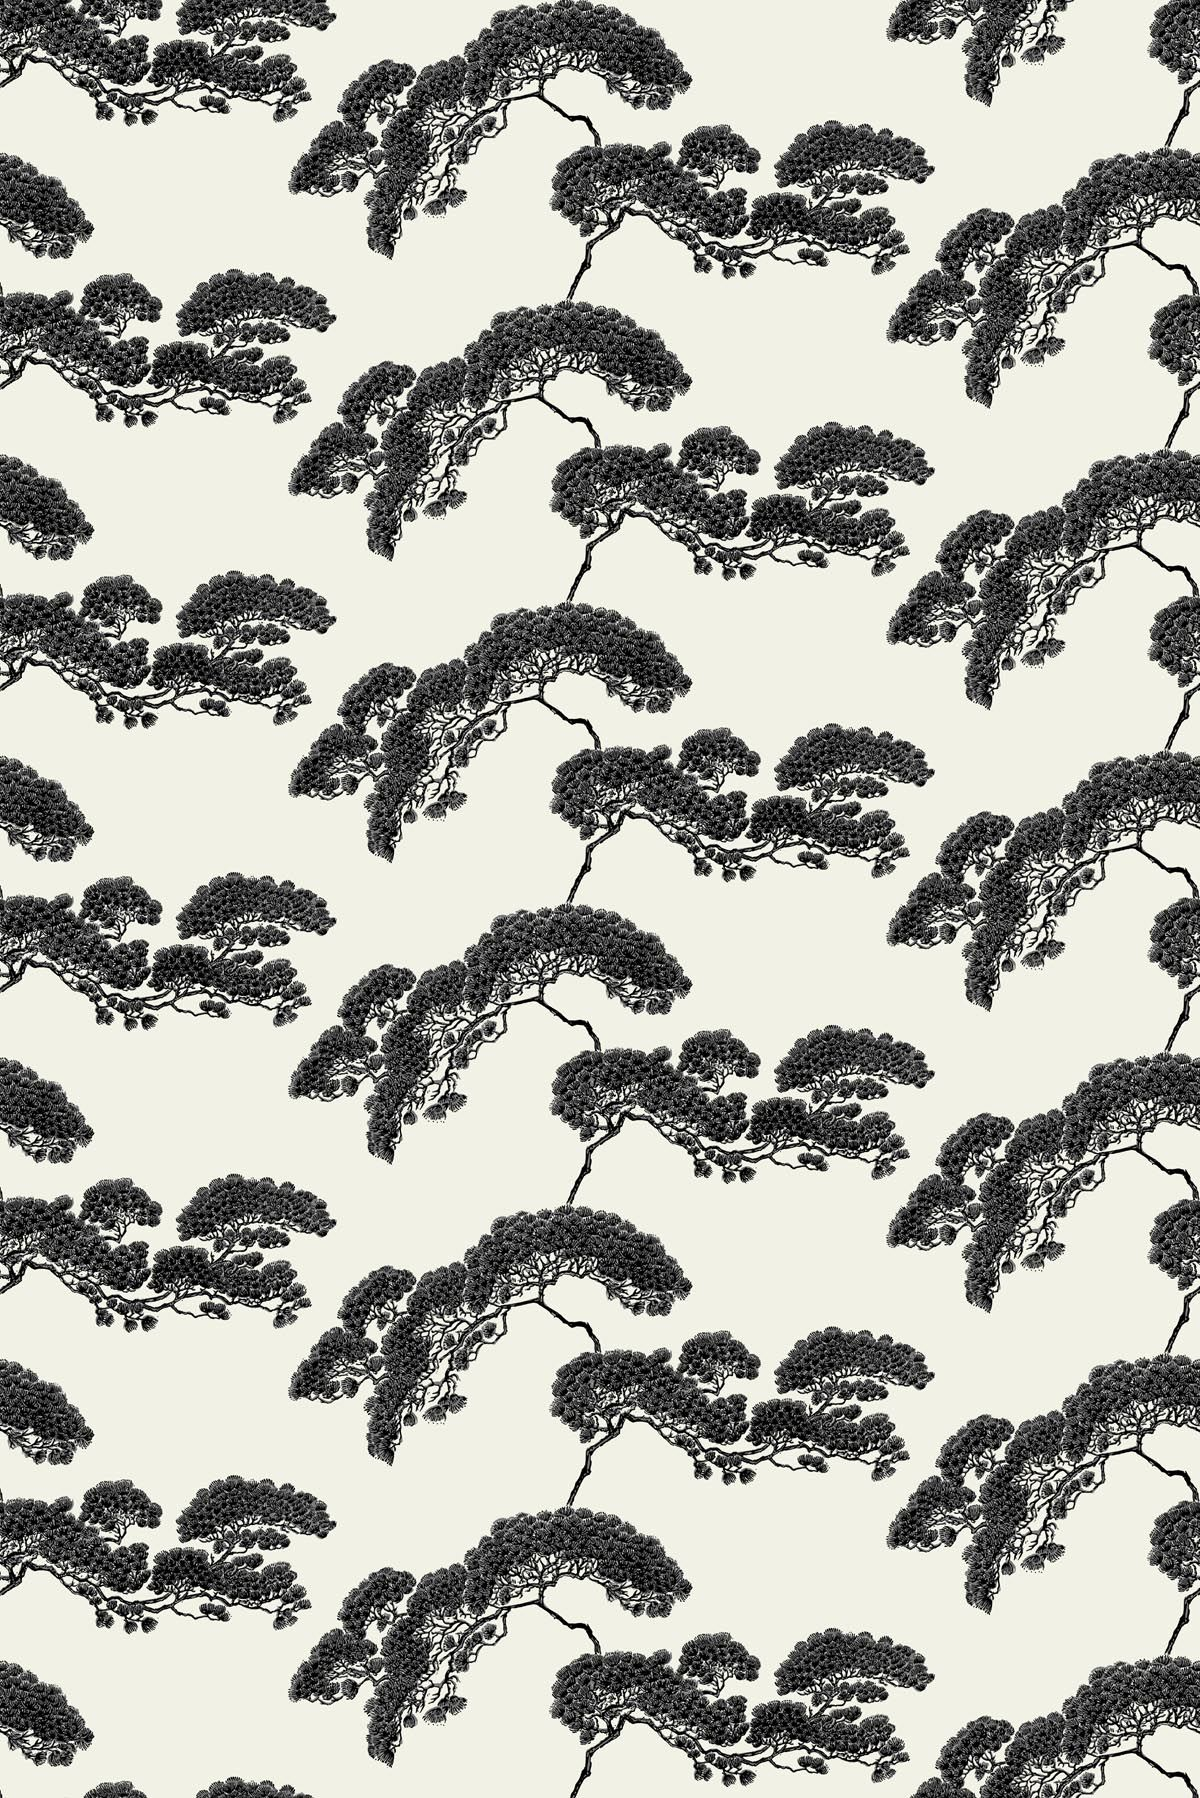 Japonese tree wallpaper